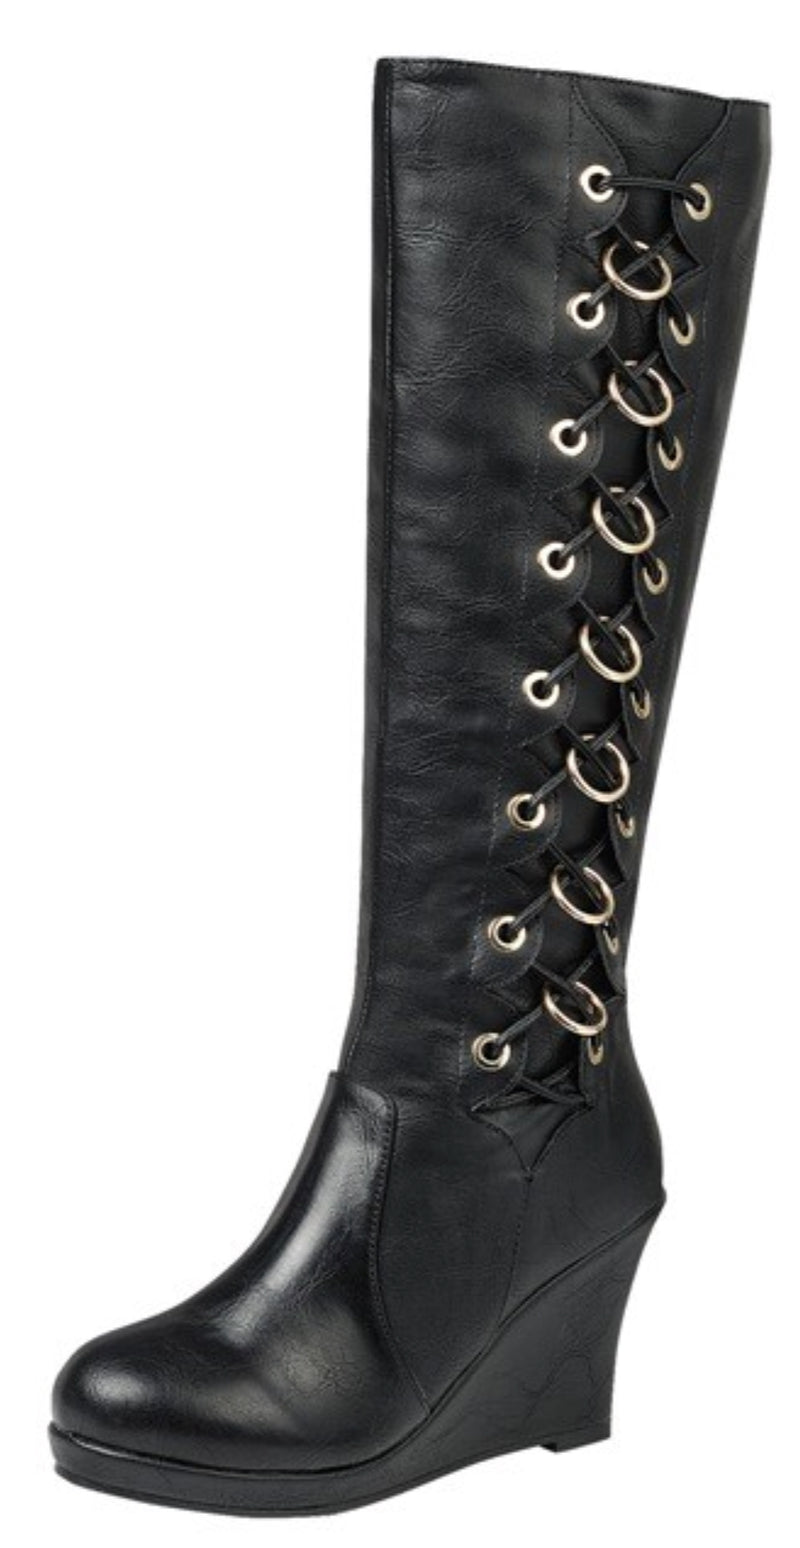 Wedge Knee High Boots